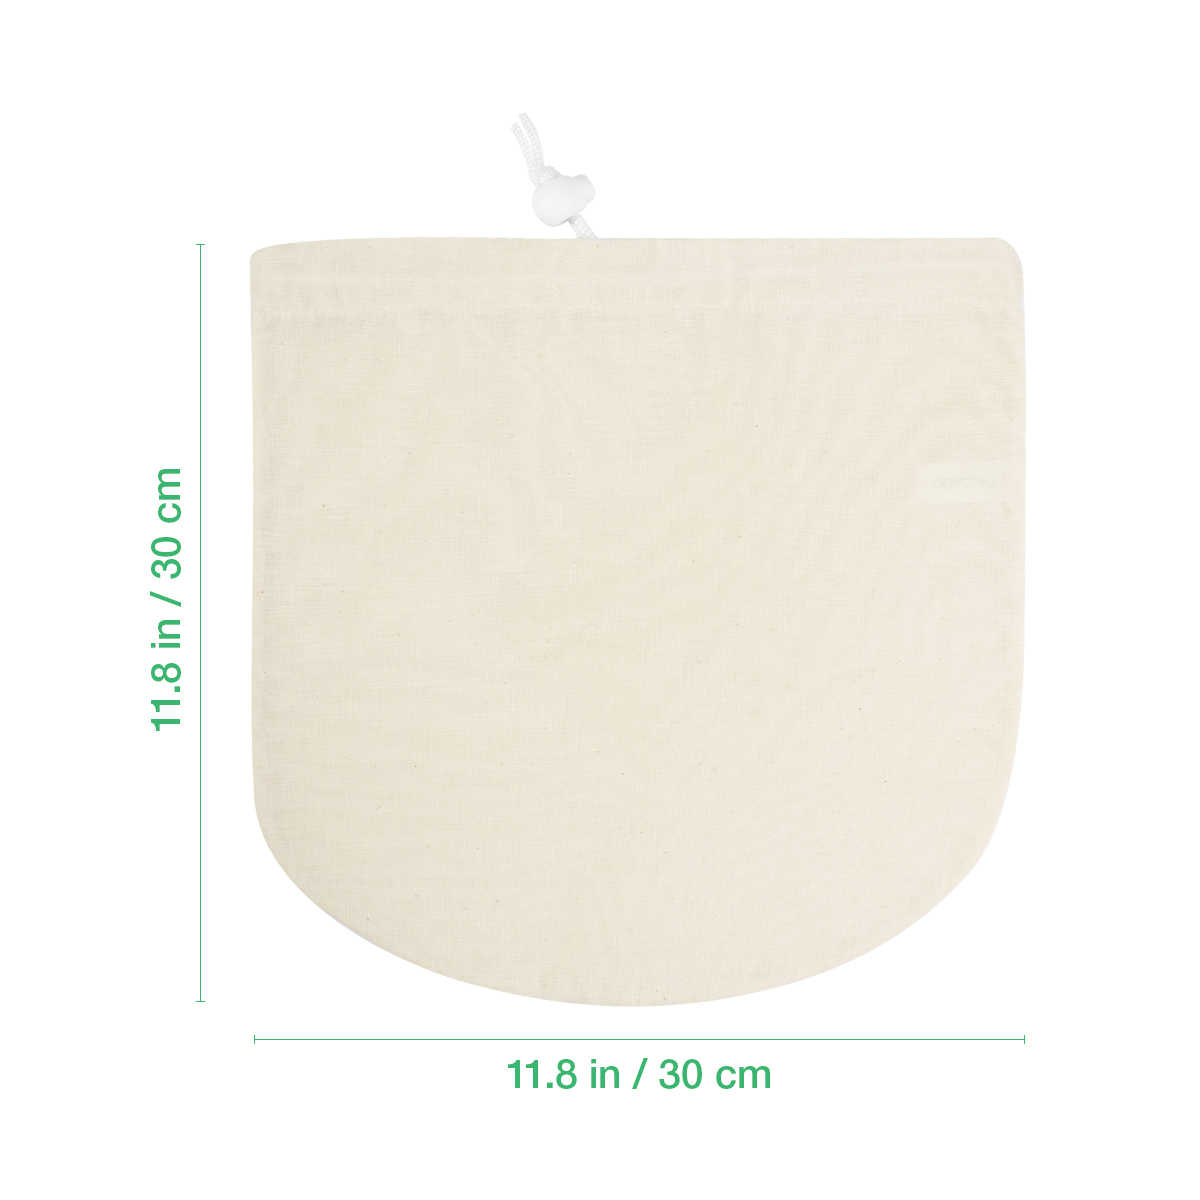 2pcs Mesh Reusable Food Strainer Filter Bag For Cold Brew Coffee Soy Milk Juice Net Strain Herb Liquid Filter Bags